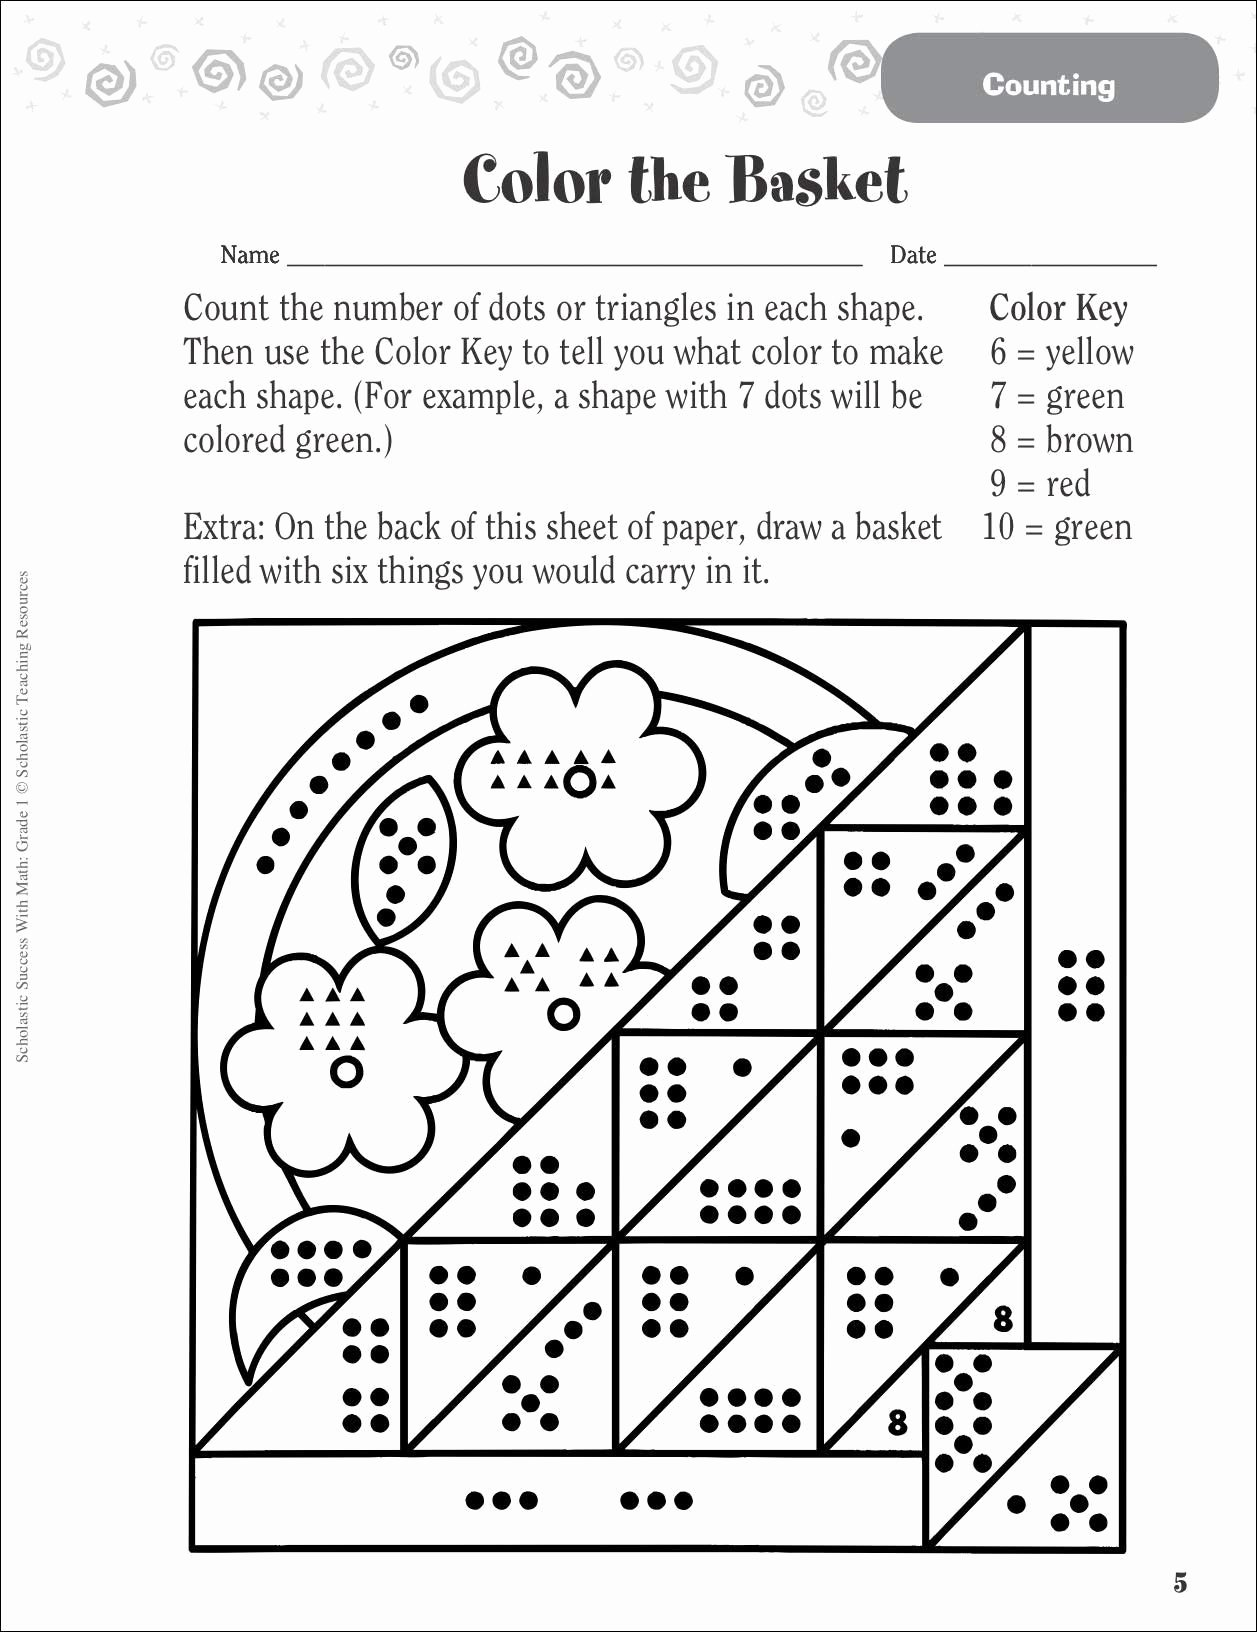 Multiplication Worksheets by Number Lovely Worksheets Decimal Meaning Identifying theme Worksheets